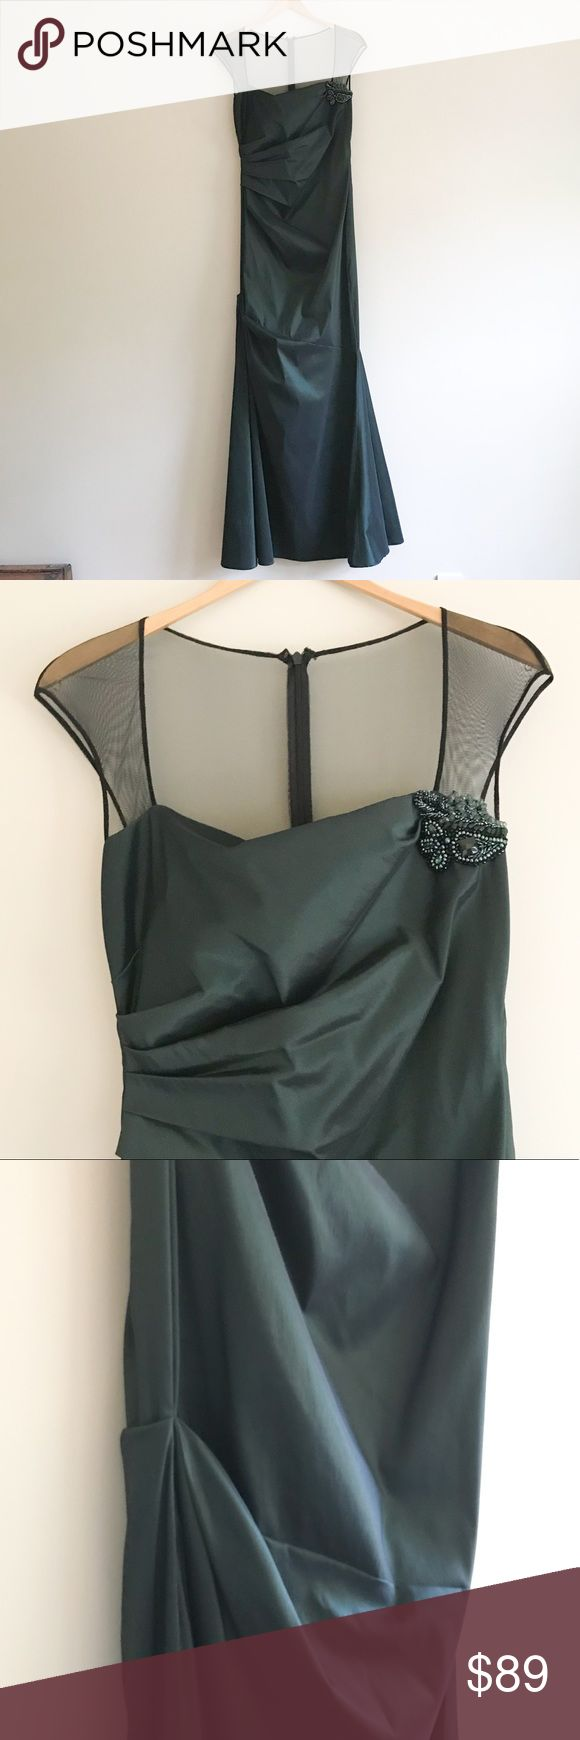 David Meister Emerald Formal Gown Wear this stunning David Meister formal gown to your next black tie event or wedding. Emerald color is perfect for the fall and holidays. Slim fit with trumpet skirt and ruching on the side, embellished detail at collar. Mesh top. Only worn once. David Meister Dresses Prom